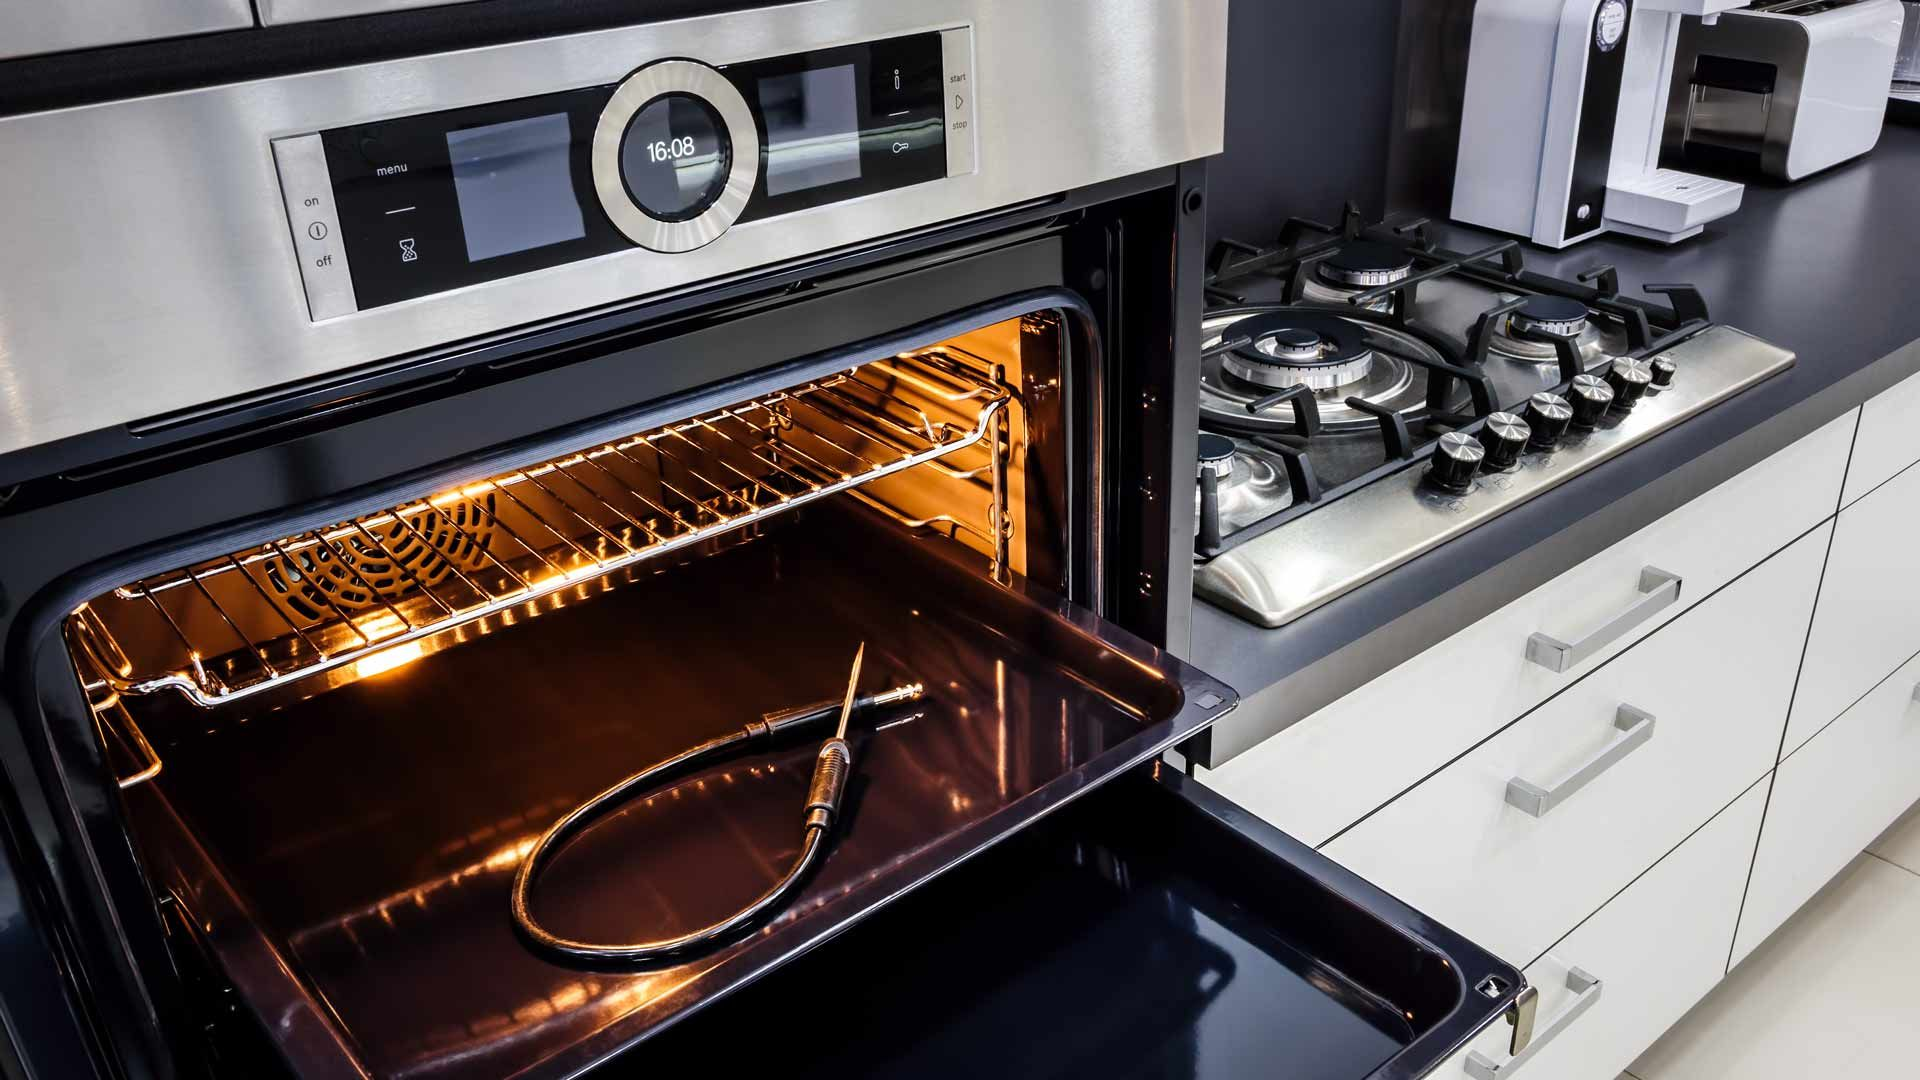 4 Benefits Of Hiring Licensed Appliance Repair Technician For Oven